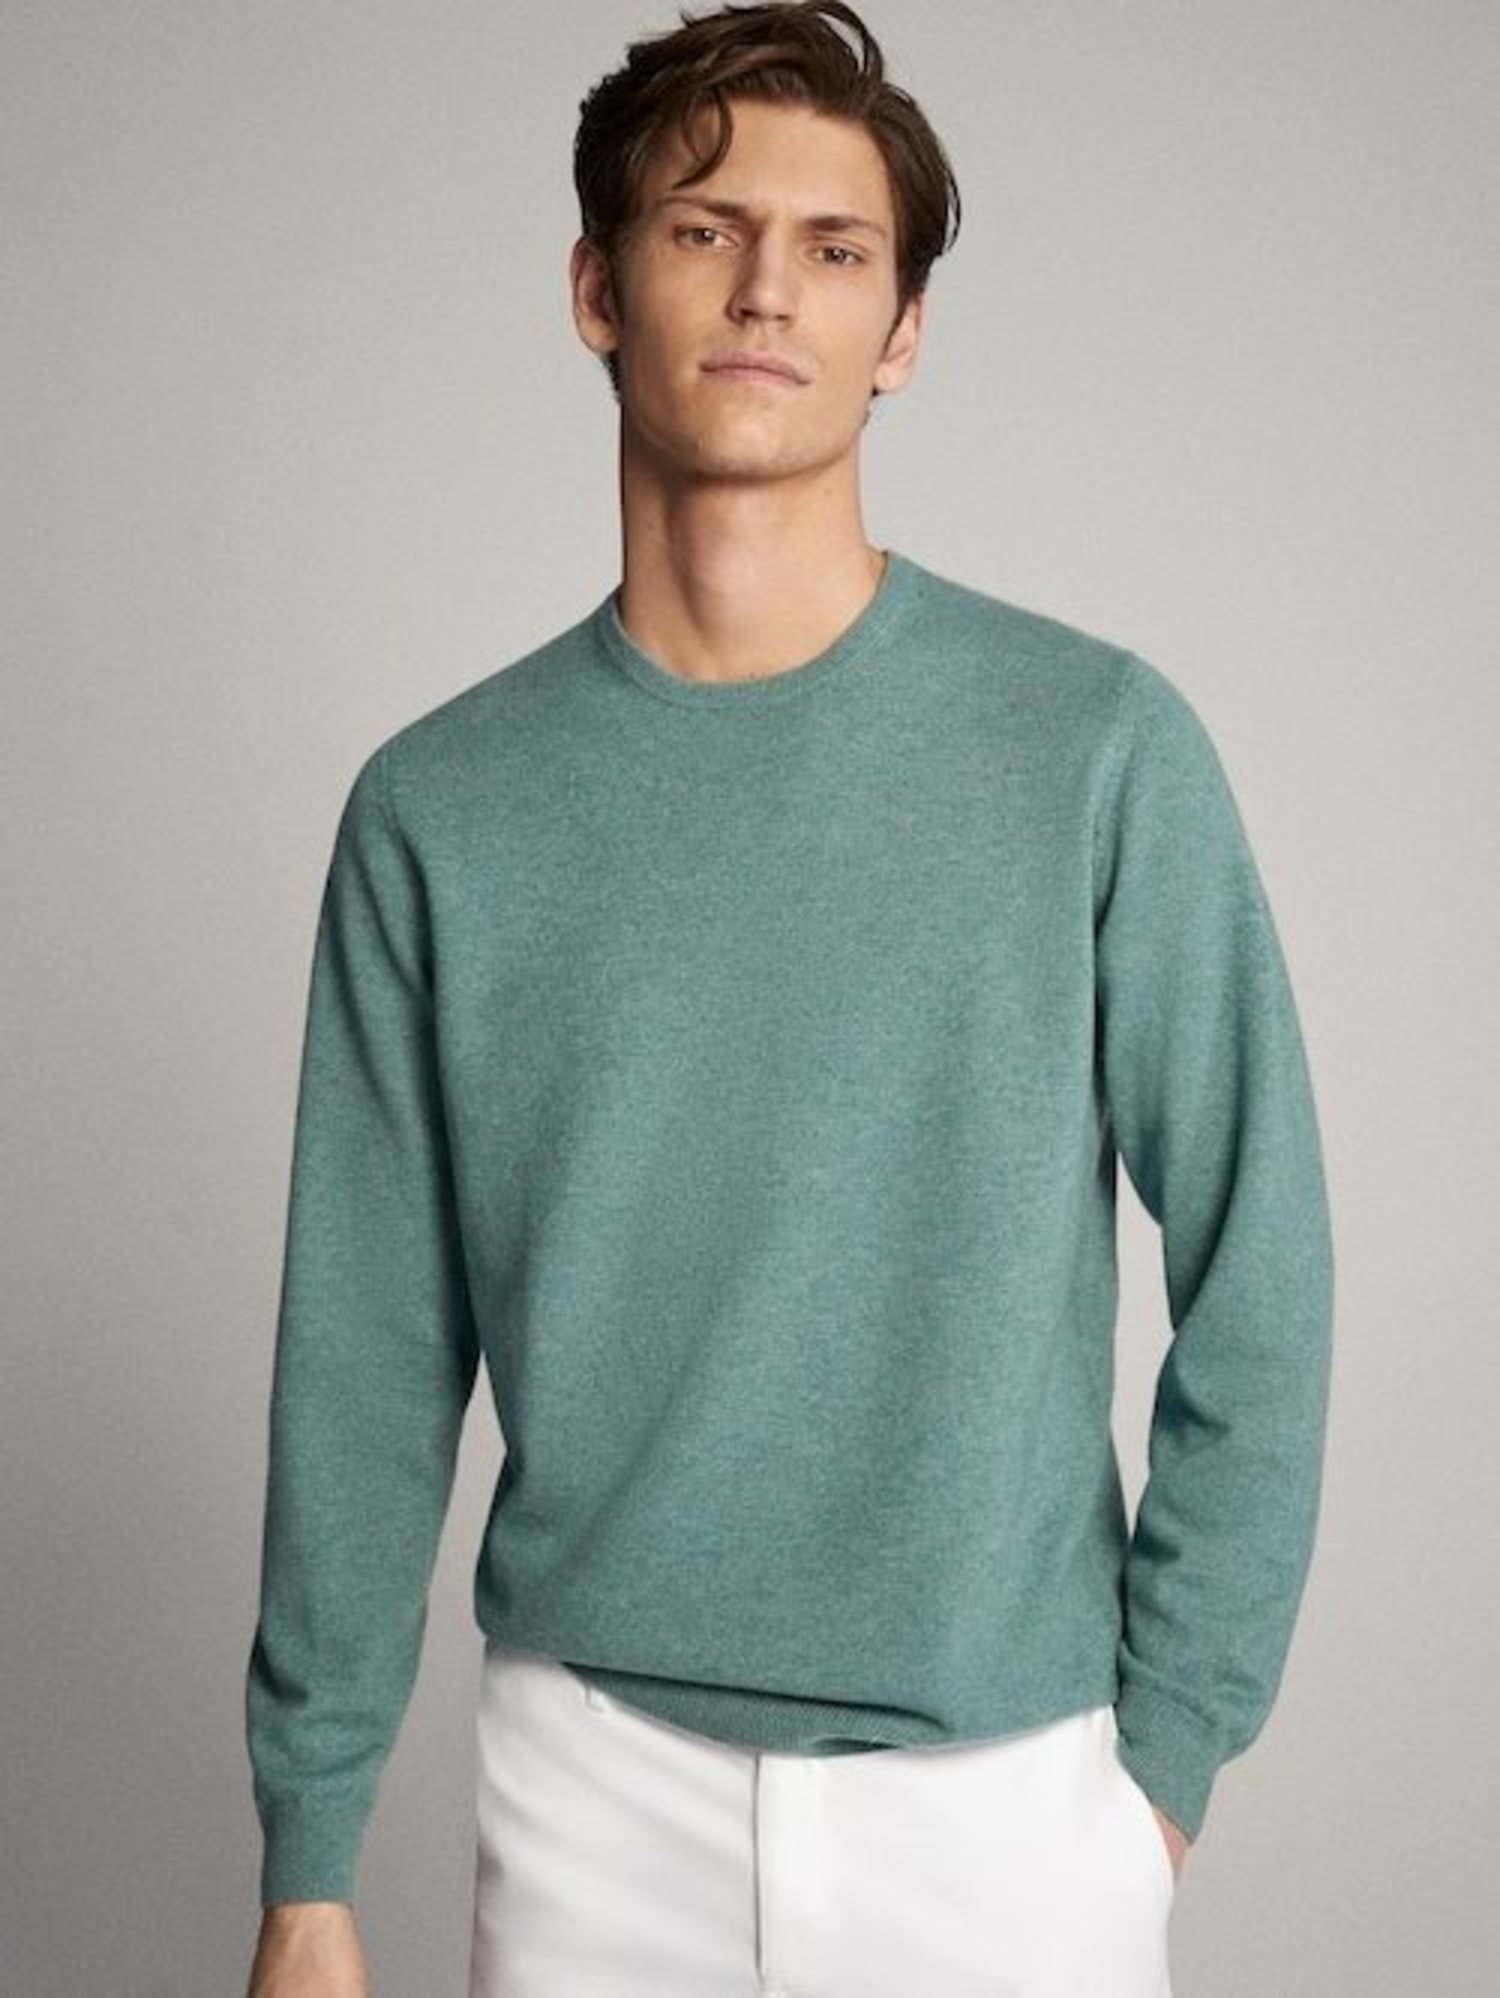 Jersey 100% Cashmere.